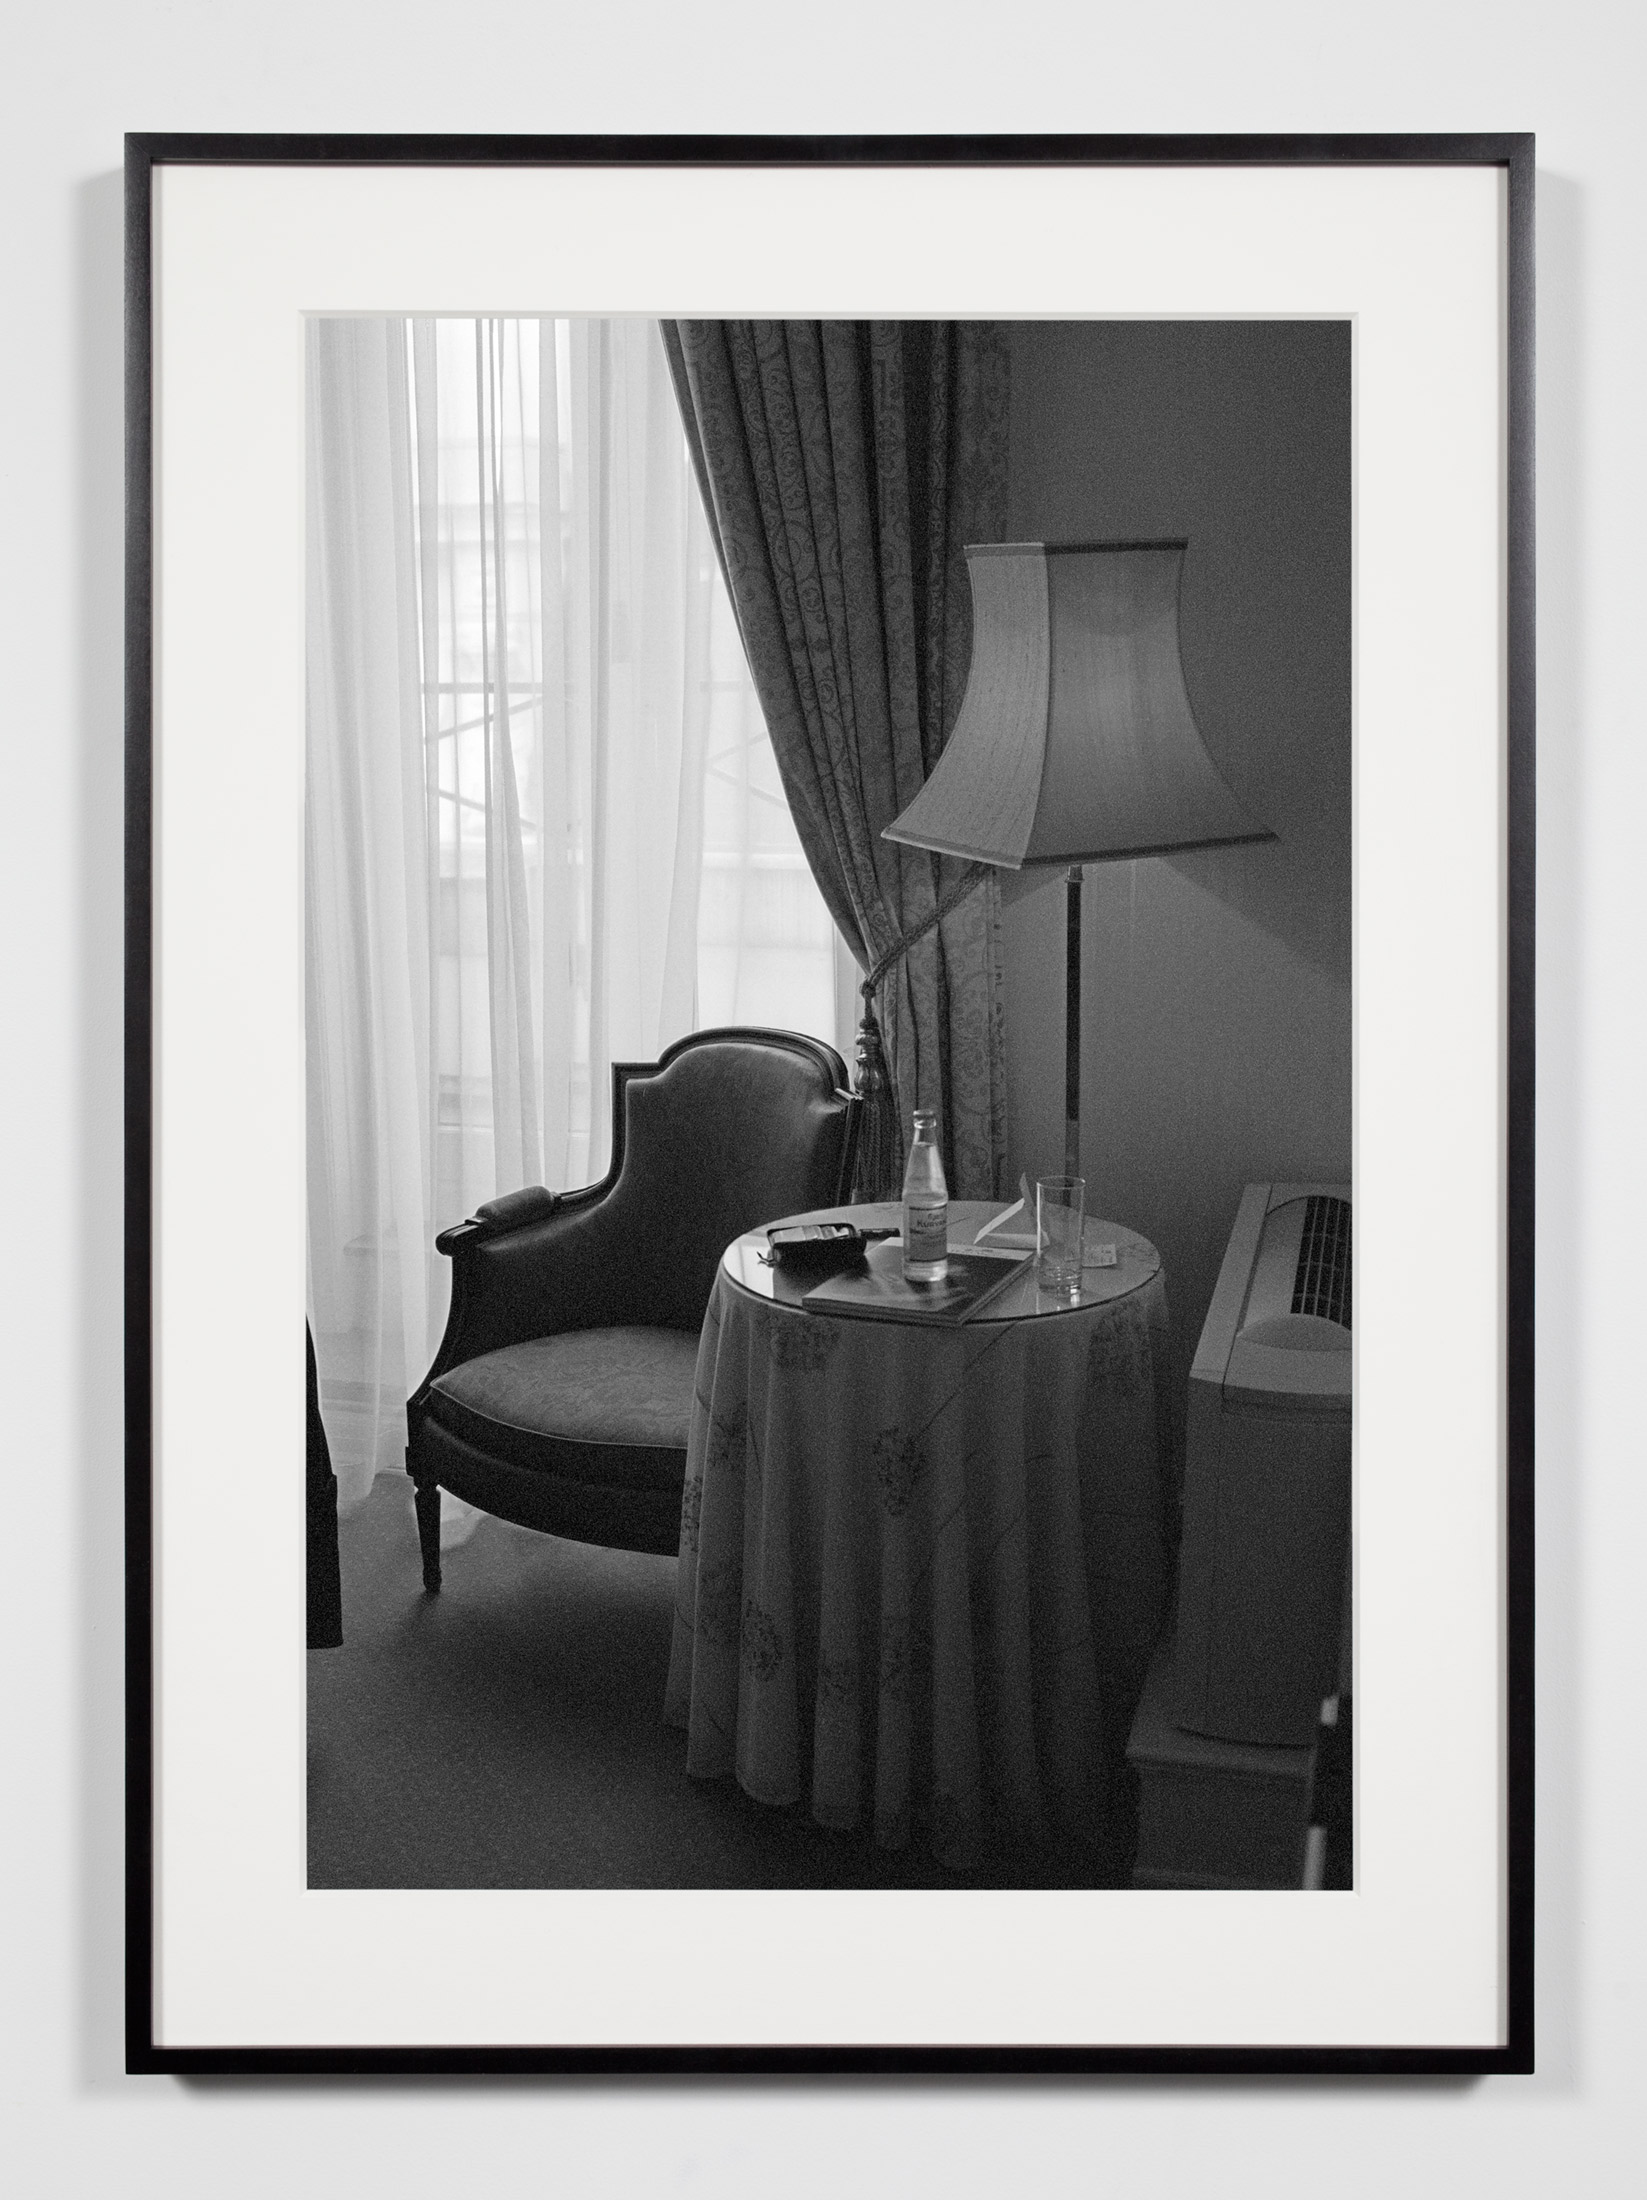 Hotel Room, Copenhagen, Denmark, May 15, 2010    2011   Epson Ultrachrome K3 archival ink jet print on Hahnemühle Photo Rag paper  36 3/8 x 26 3/8 inches   A Diagram of Forces, 2011